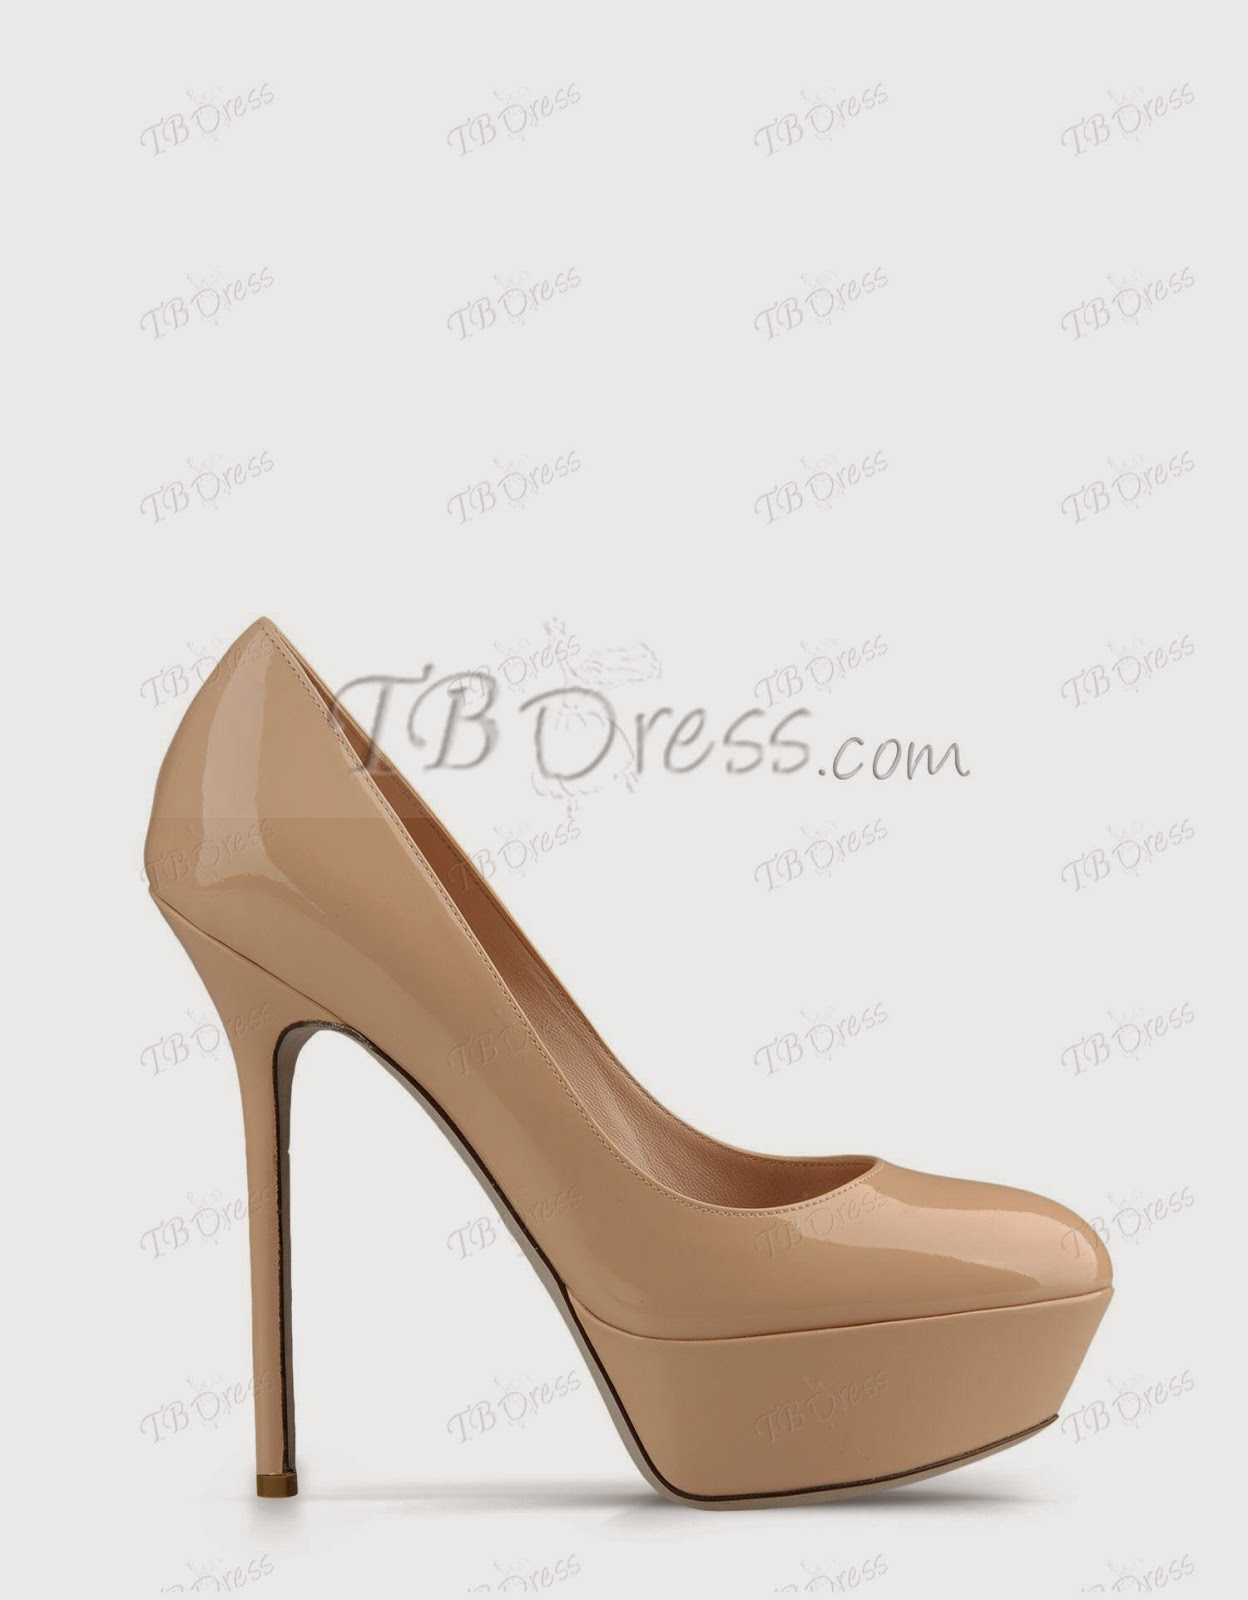 http://www.tbdress.com/product/Nude-Patent-Leather-Heightening-Platform-Design-Women-Pumps-10781495.html